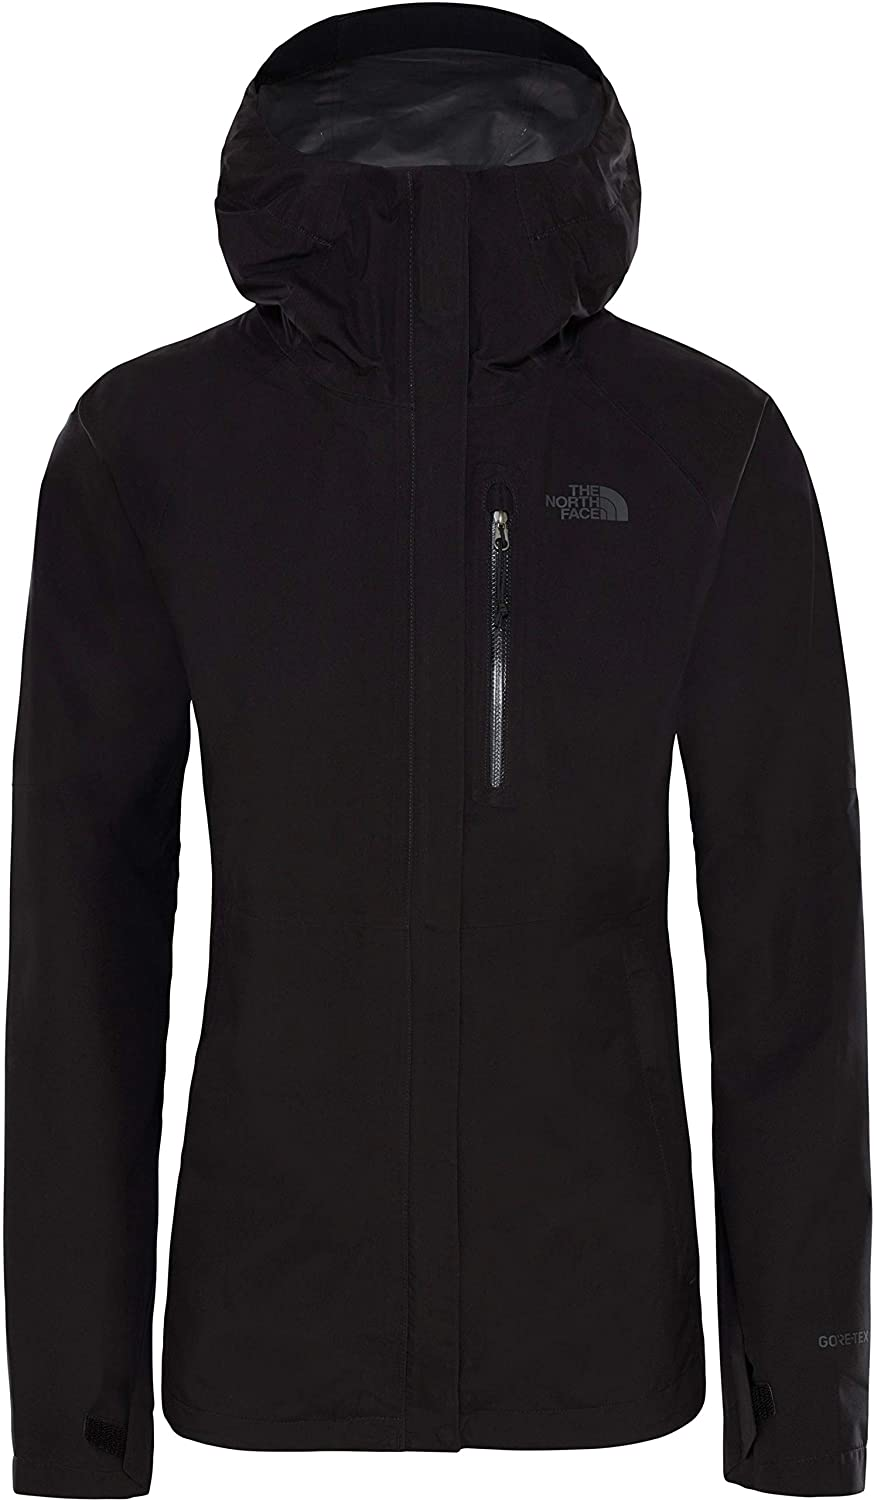 561ee6a2f1785 THE NORTH FACE Women s Dryzzle Jacket  Amazon.co.uk  Sports   Outdoors